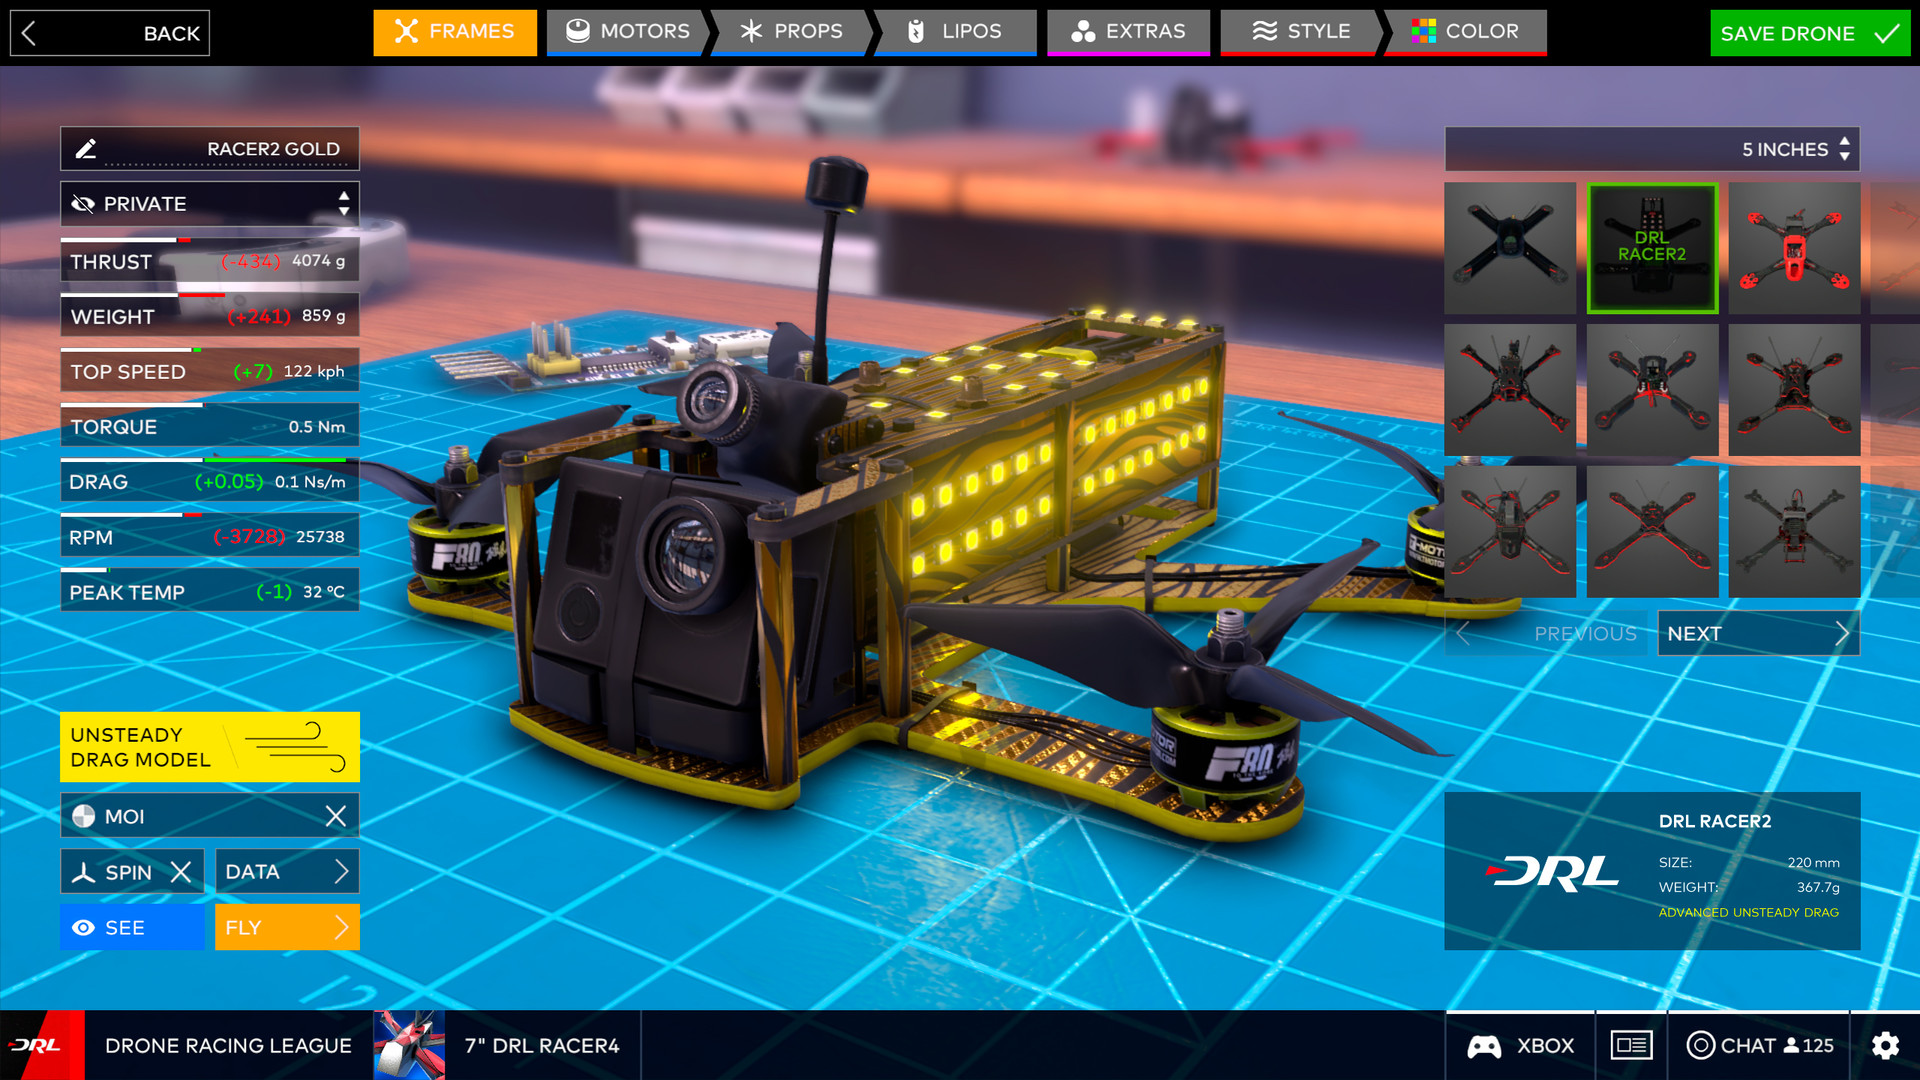 The Drone Racing League Simulator on Steam